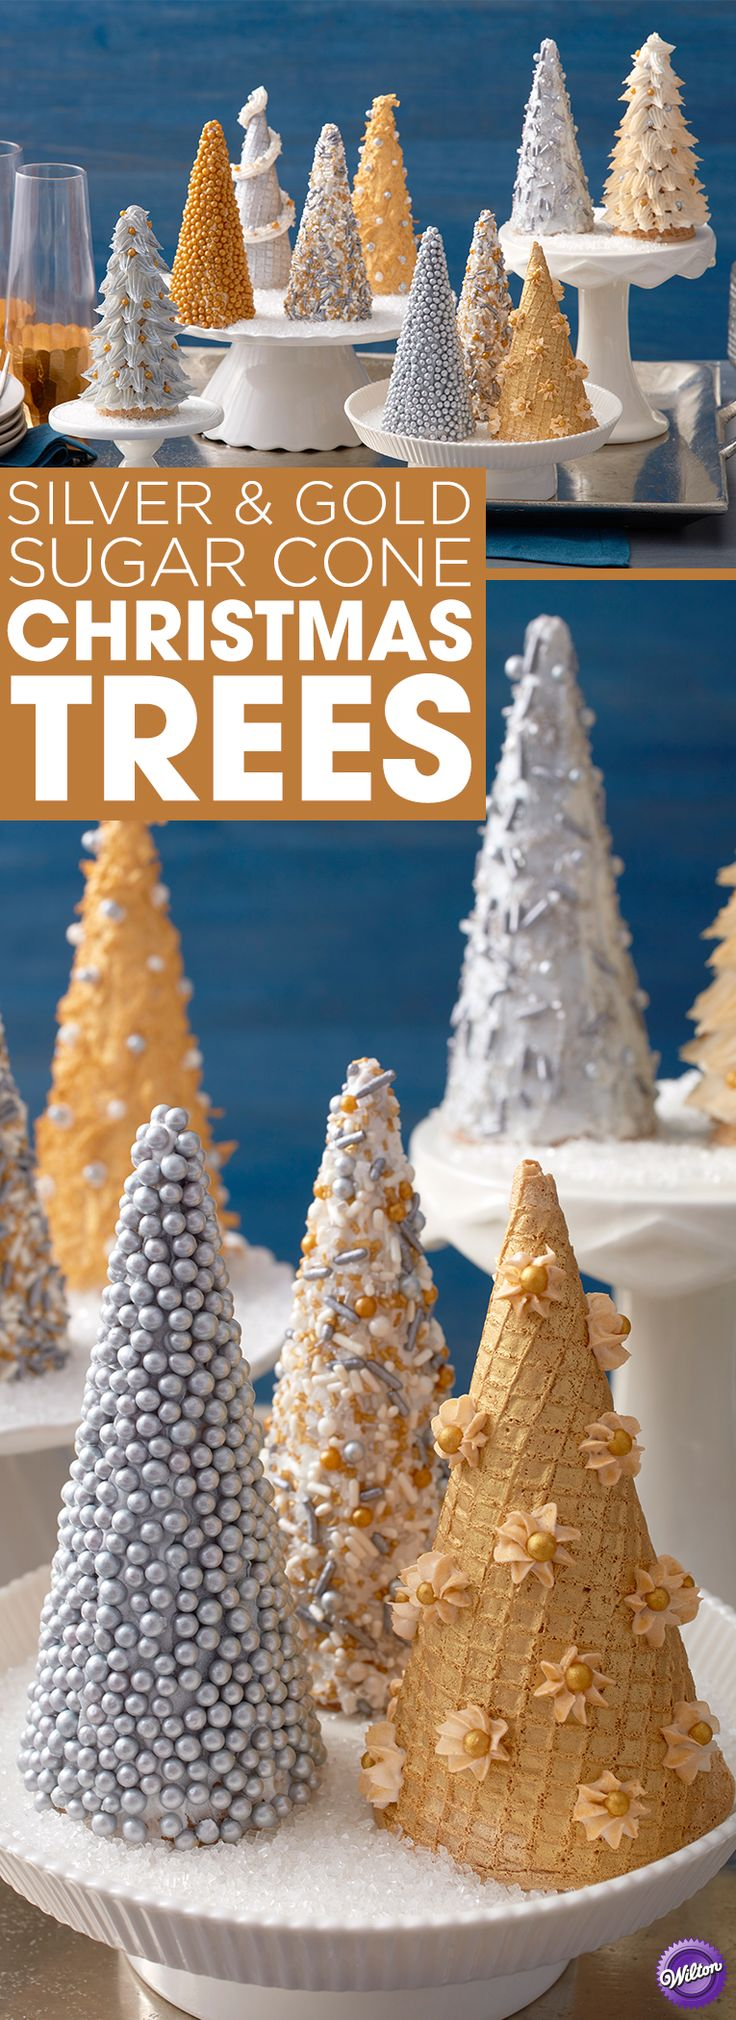 Silver and Gold Sugar Cone Christmas Trees - Create a forest of metallic trees with this Silver and Gold Sugar Cone Christmas Trees display. Fun for handing out as gifts or using as an edible Christmas dinner centerpiece, these glowing trees are decorated using an assortment of edible accents, including sprinkles, Sugar Pearls, Pearl Dust and Color Mist Food Color Spray.